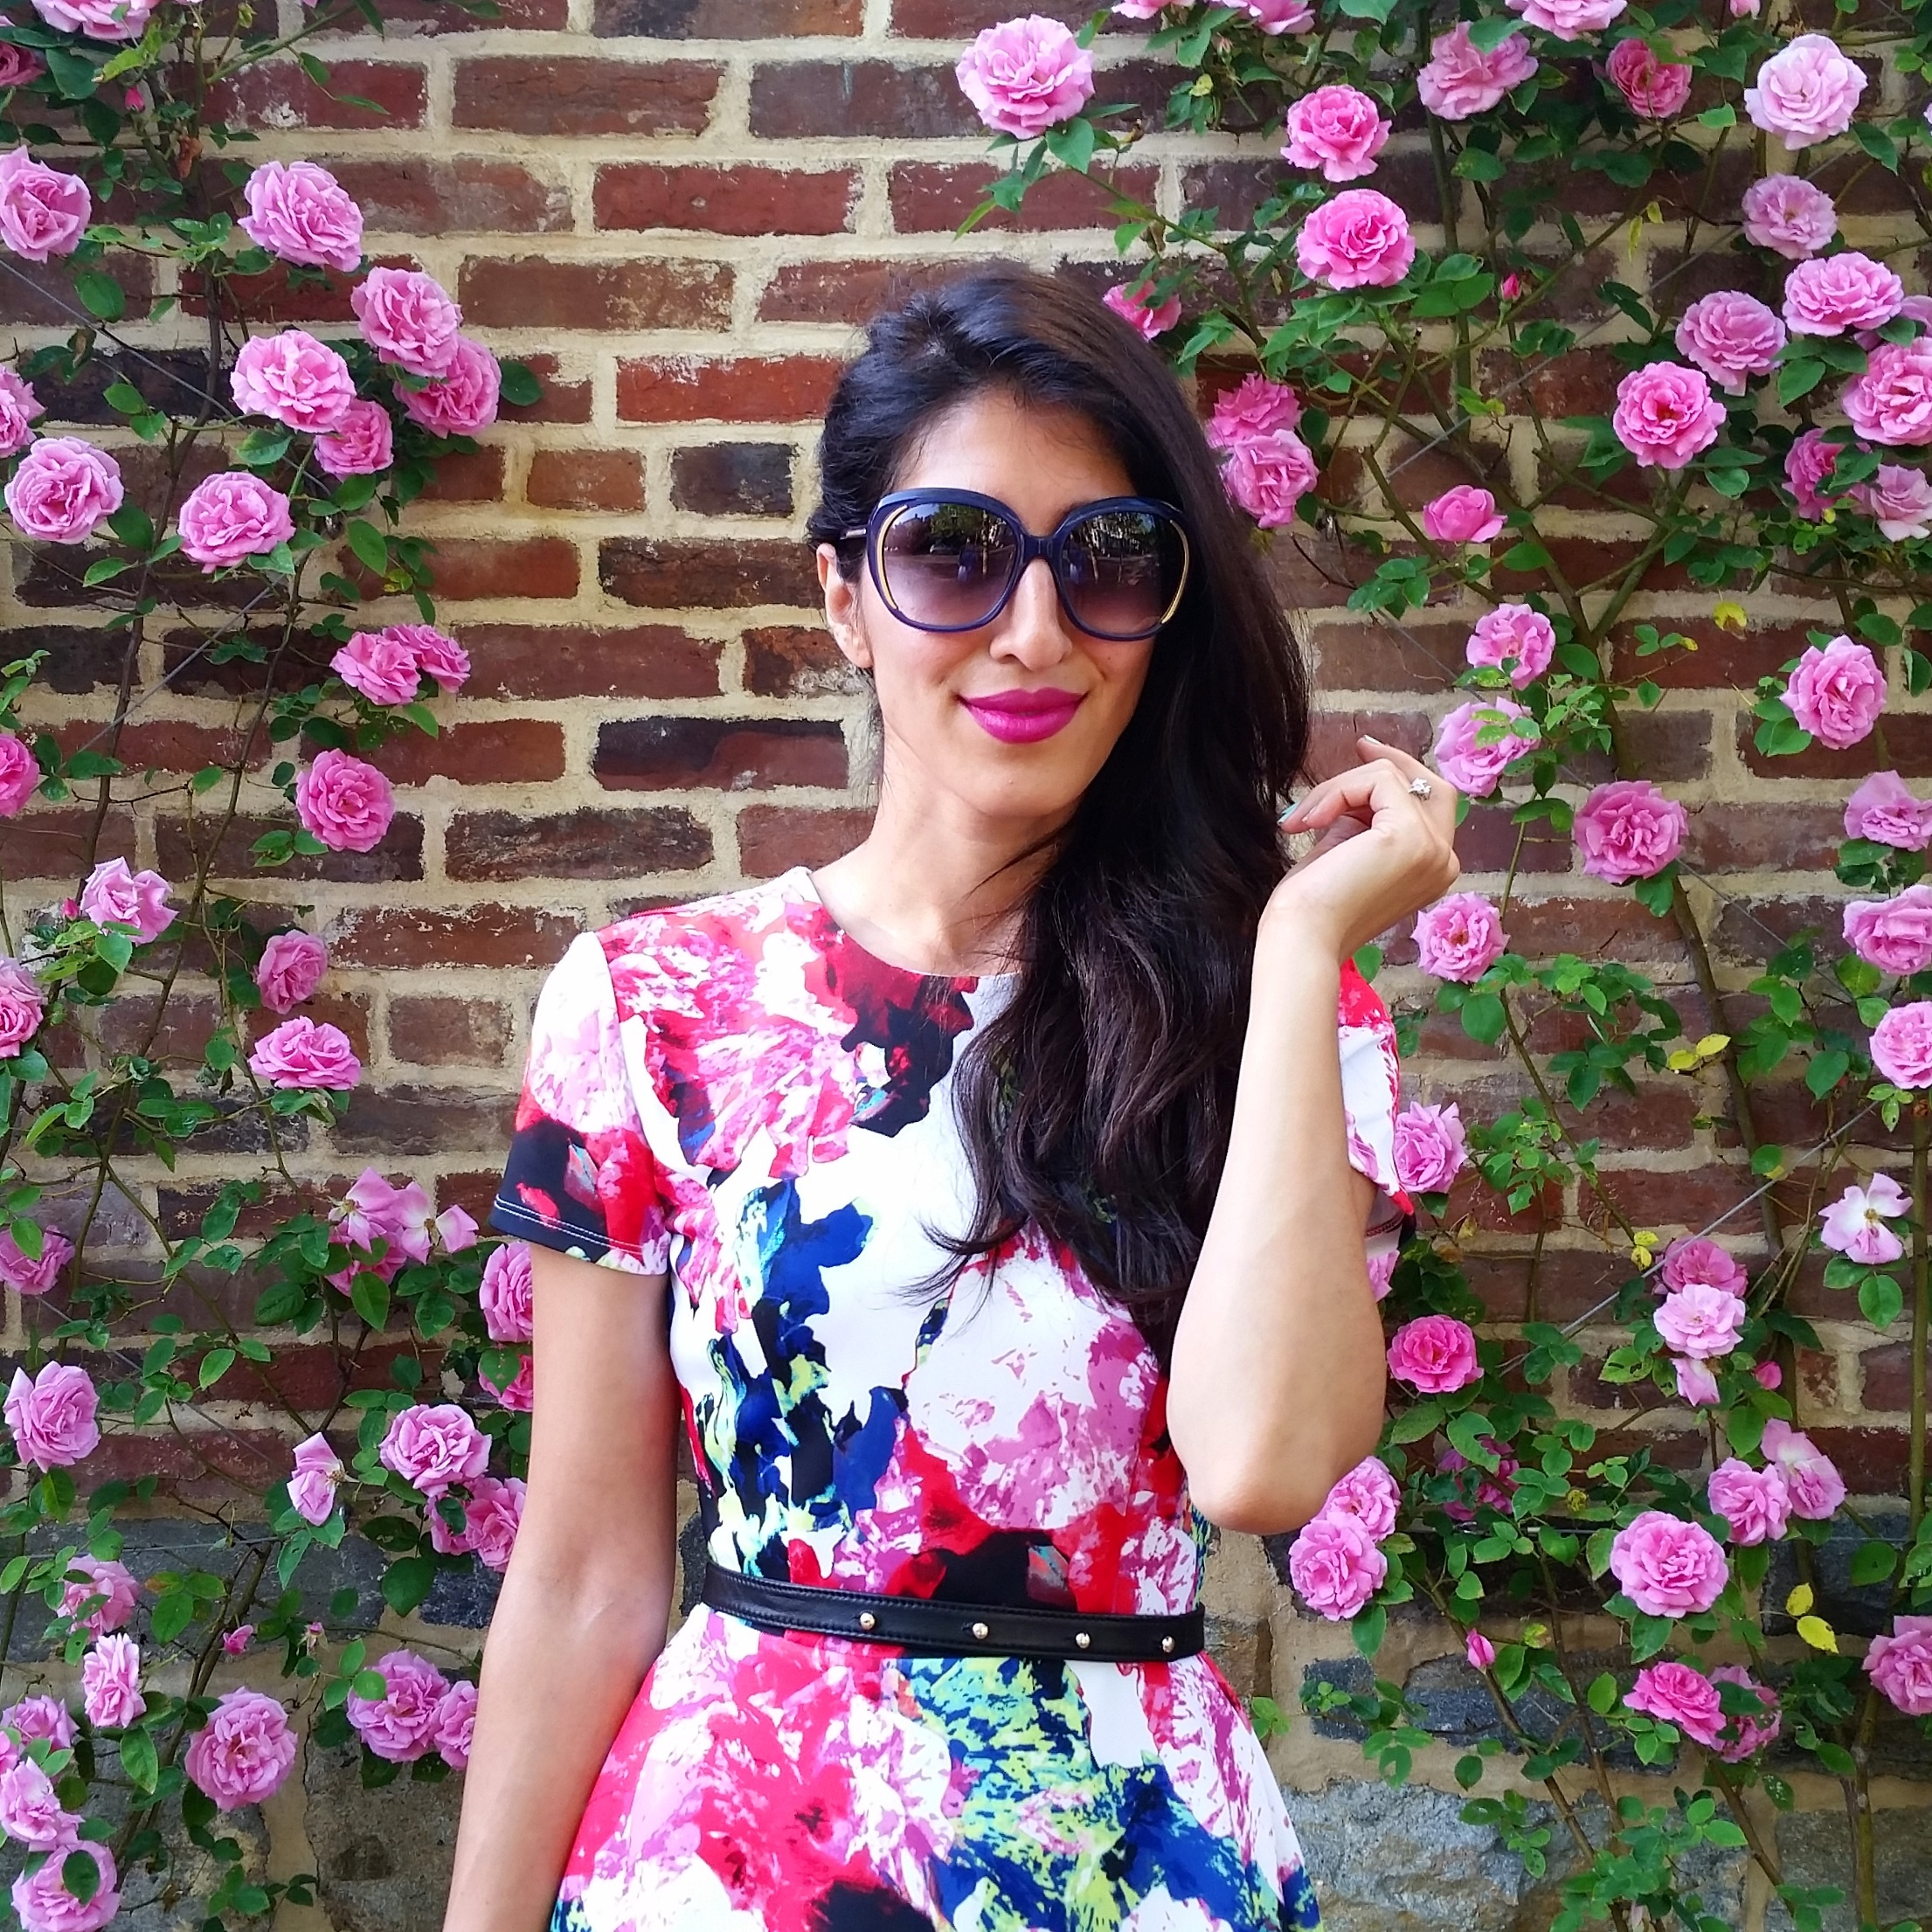 On weekends, we wear BRIGHT and BOLD floral prints with painterly effects! Milly makes some of my favorite printed dresses, and this one is no exception!